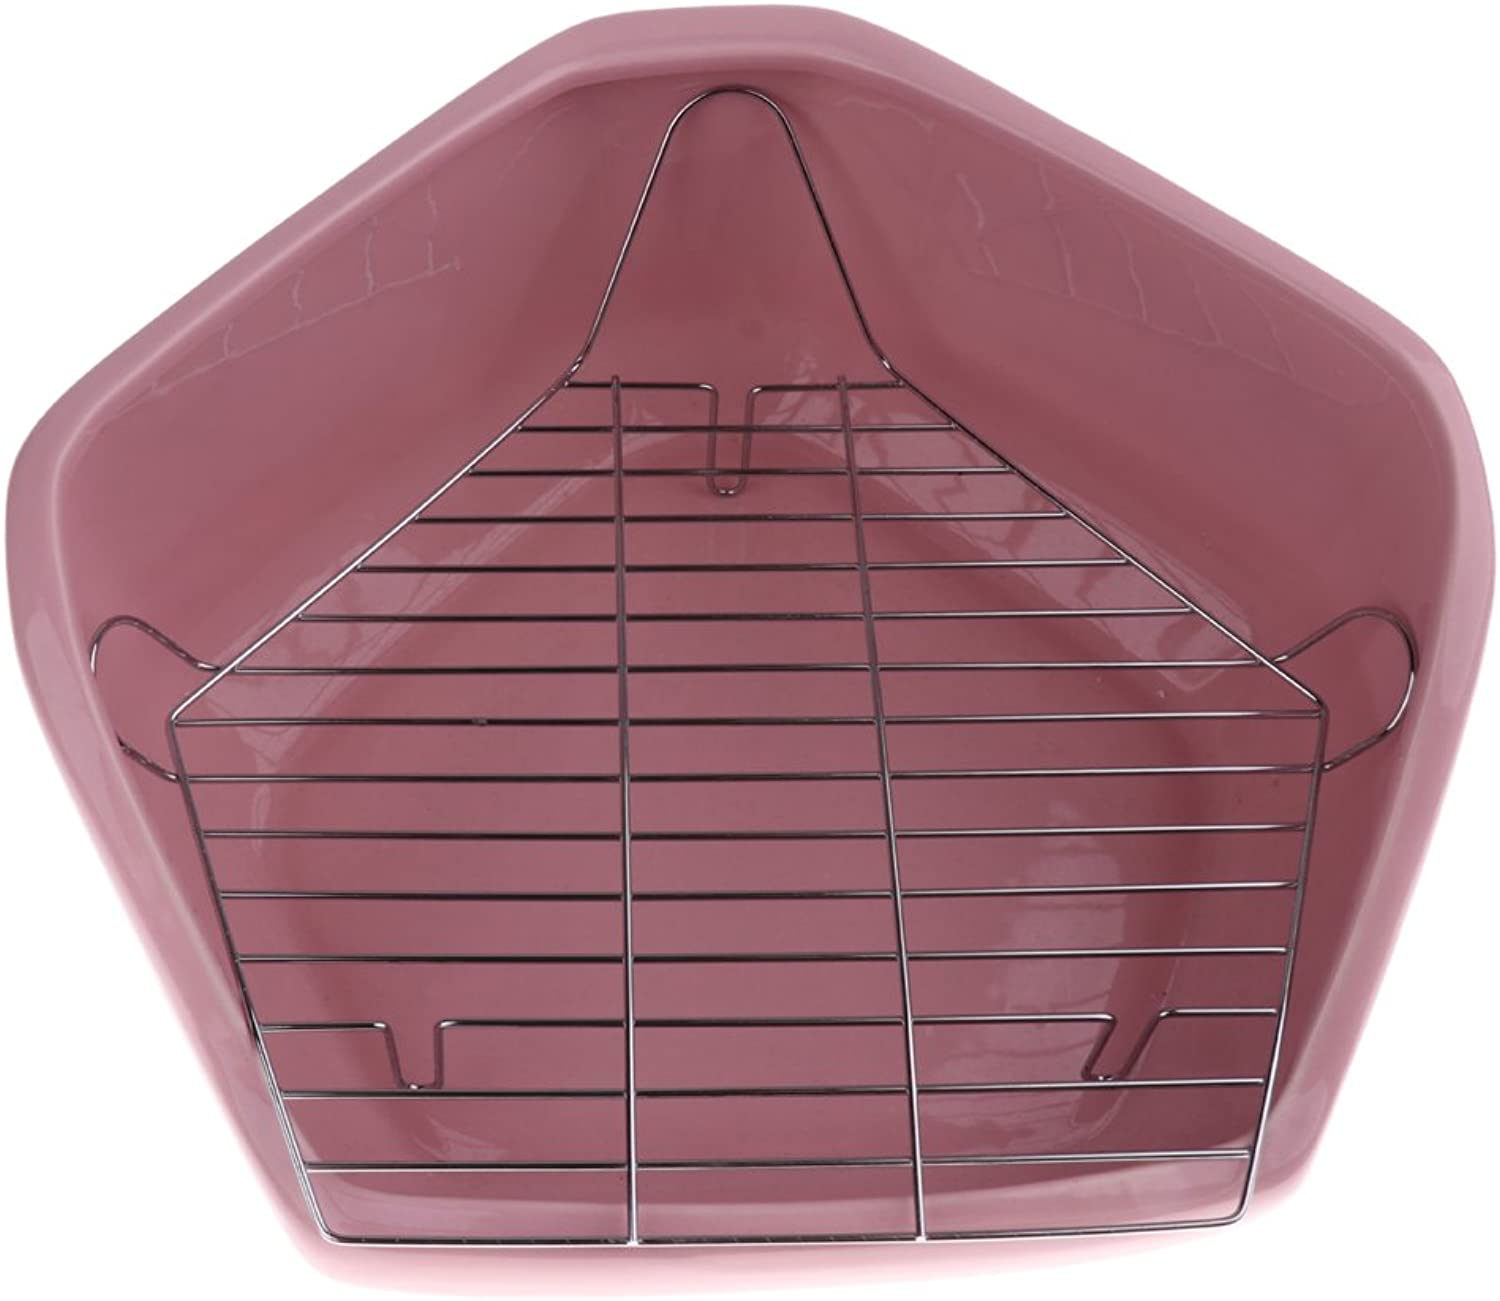 Baoblaze Ceramic Hamster Mouse Gerbille Cage Pet Toy Toilet Cage Corner Toilet Two Layers  Pink